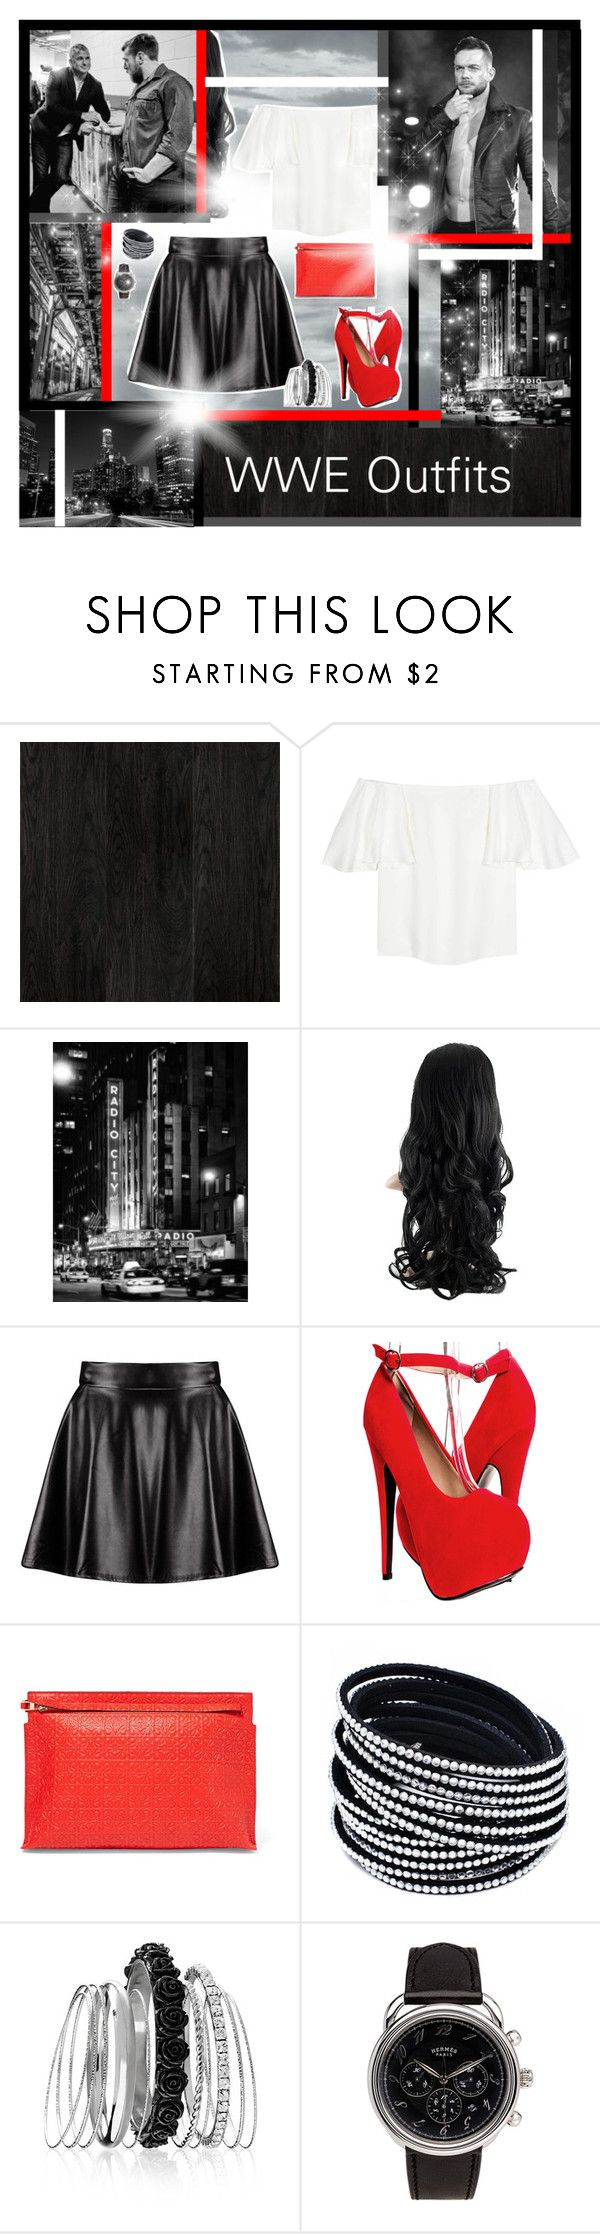 """""""WWE Outfits #88"""" by annacrystal ❤ liked on Polyvore featuring Valentino, WWE, Boohoo, Loewe, Avenue, Hermès, DanielBryan, finnbalor and shanemcmahon"""